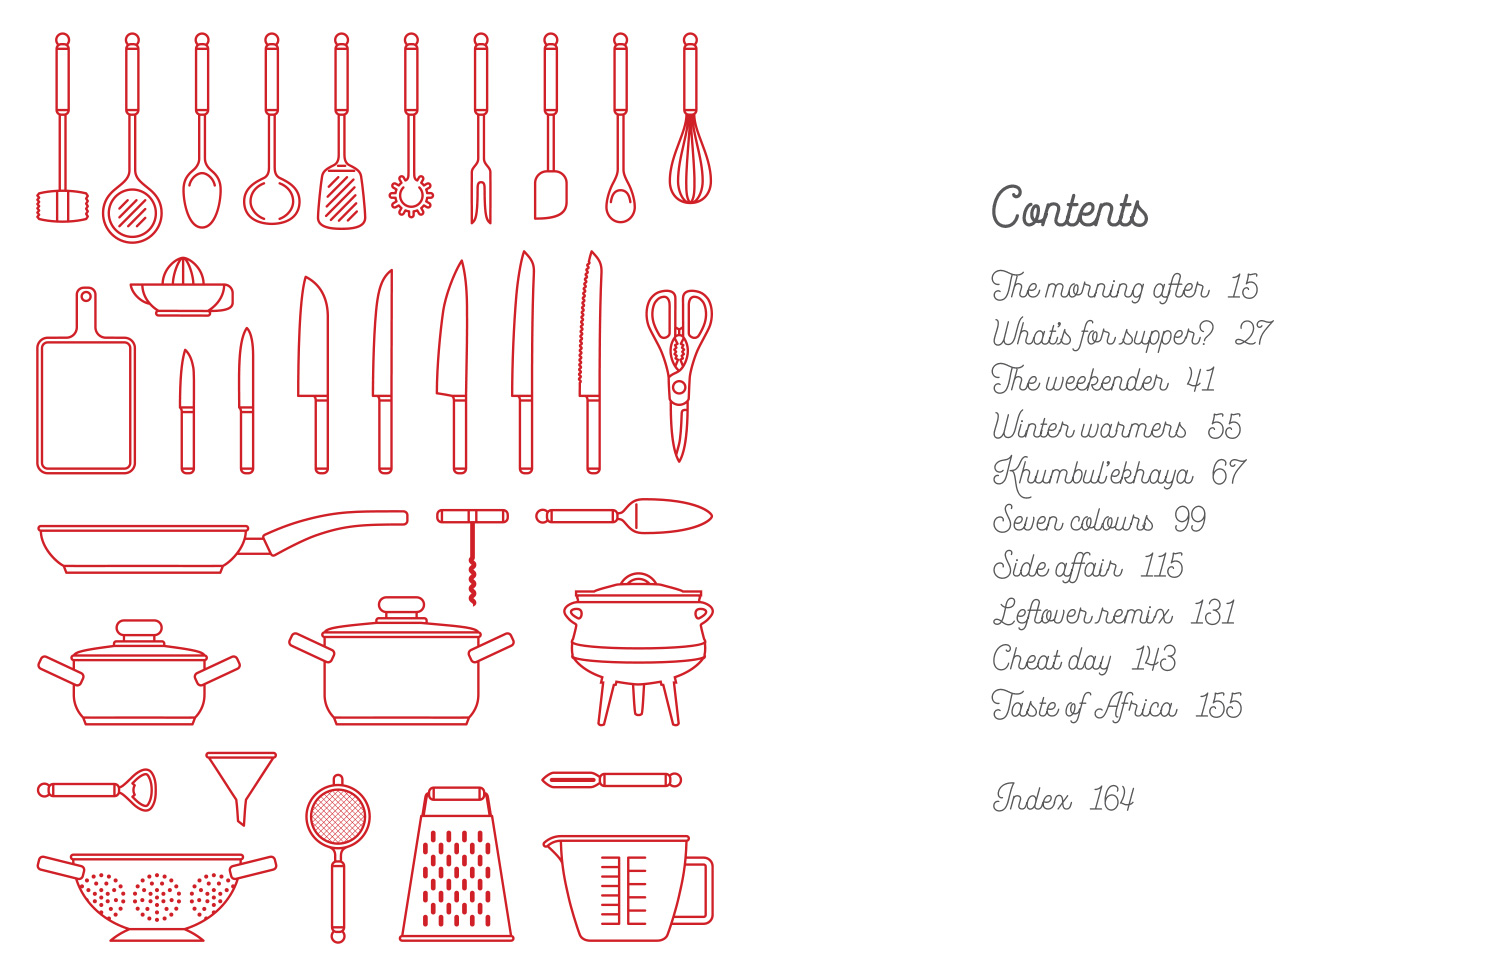 Contents page for The Lazy Makoti's Guide to the Kitchen